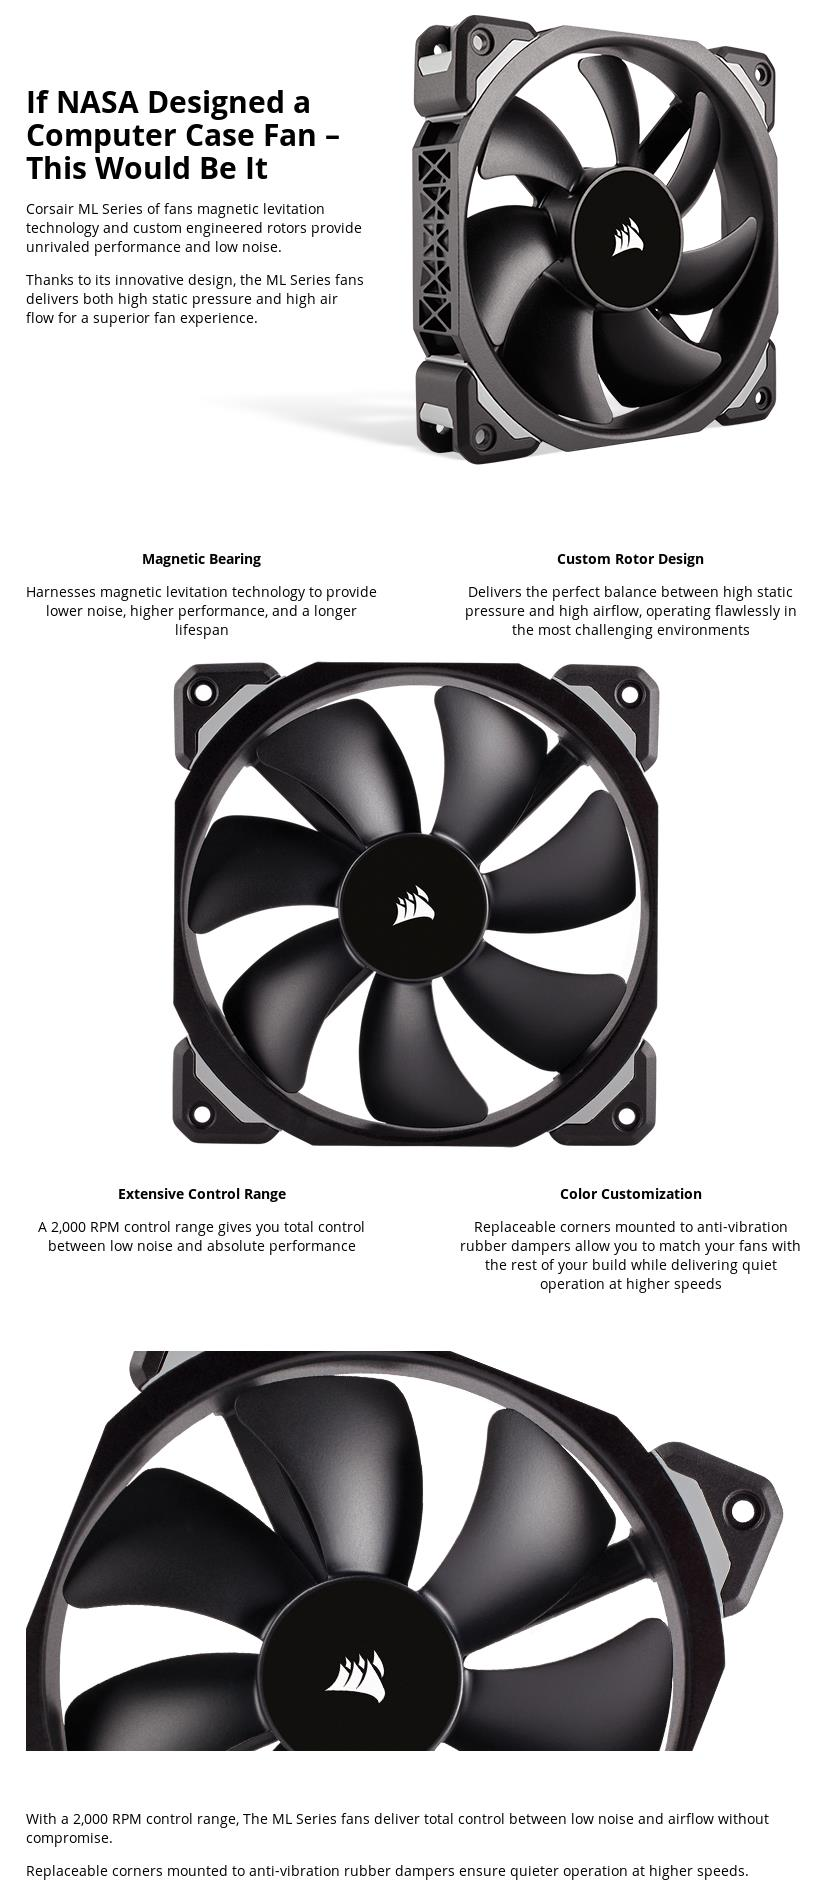 A large marketing image providing additional information about the product Corsair ML120 Pro 120mm Mag-Lev Cooling Fan - Additional alt info not provided